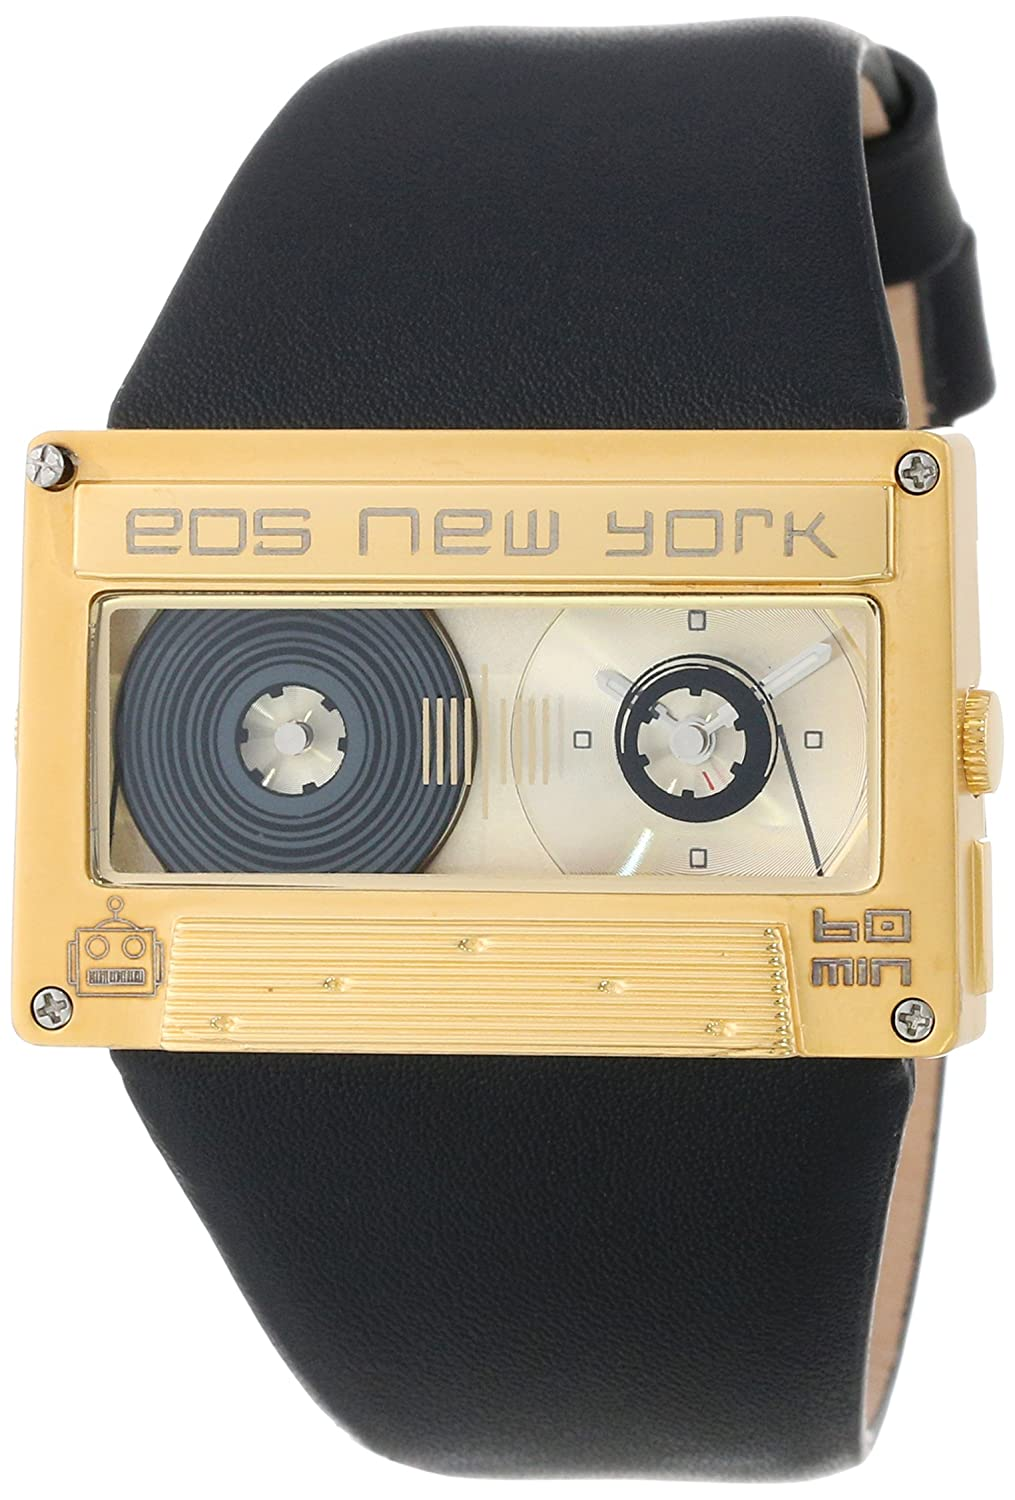 Eos New York Mixtape Watch gold - black Unisex Uhr im Kassettenlook Tape 302SBLKGLD